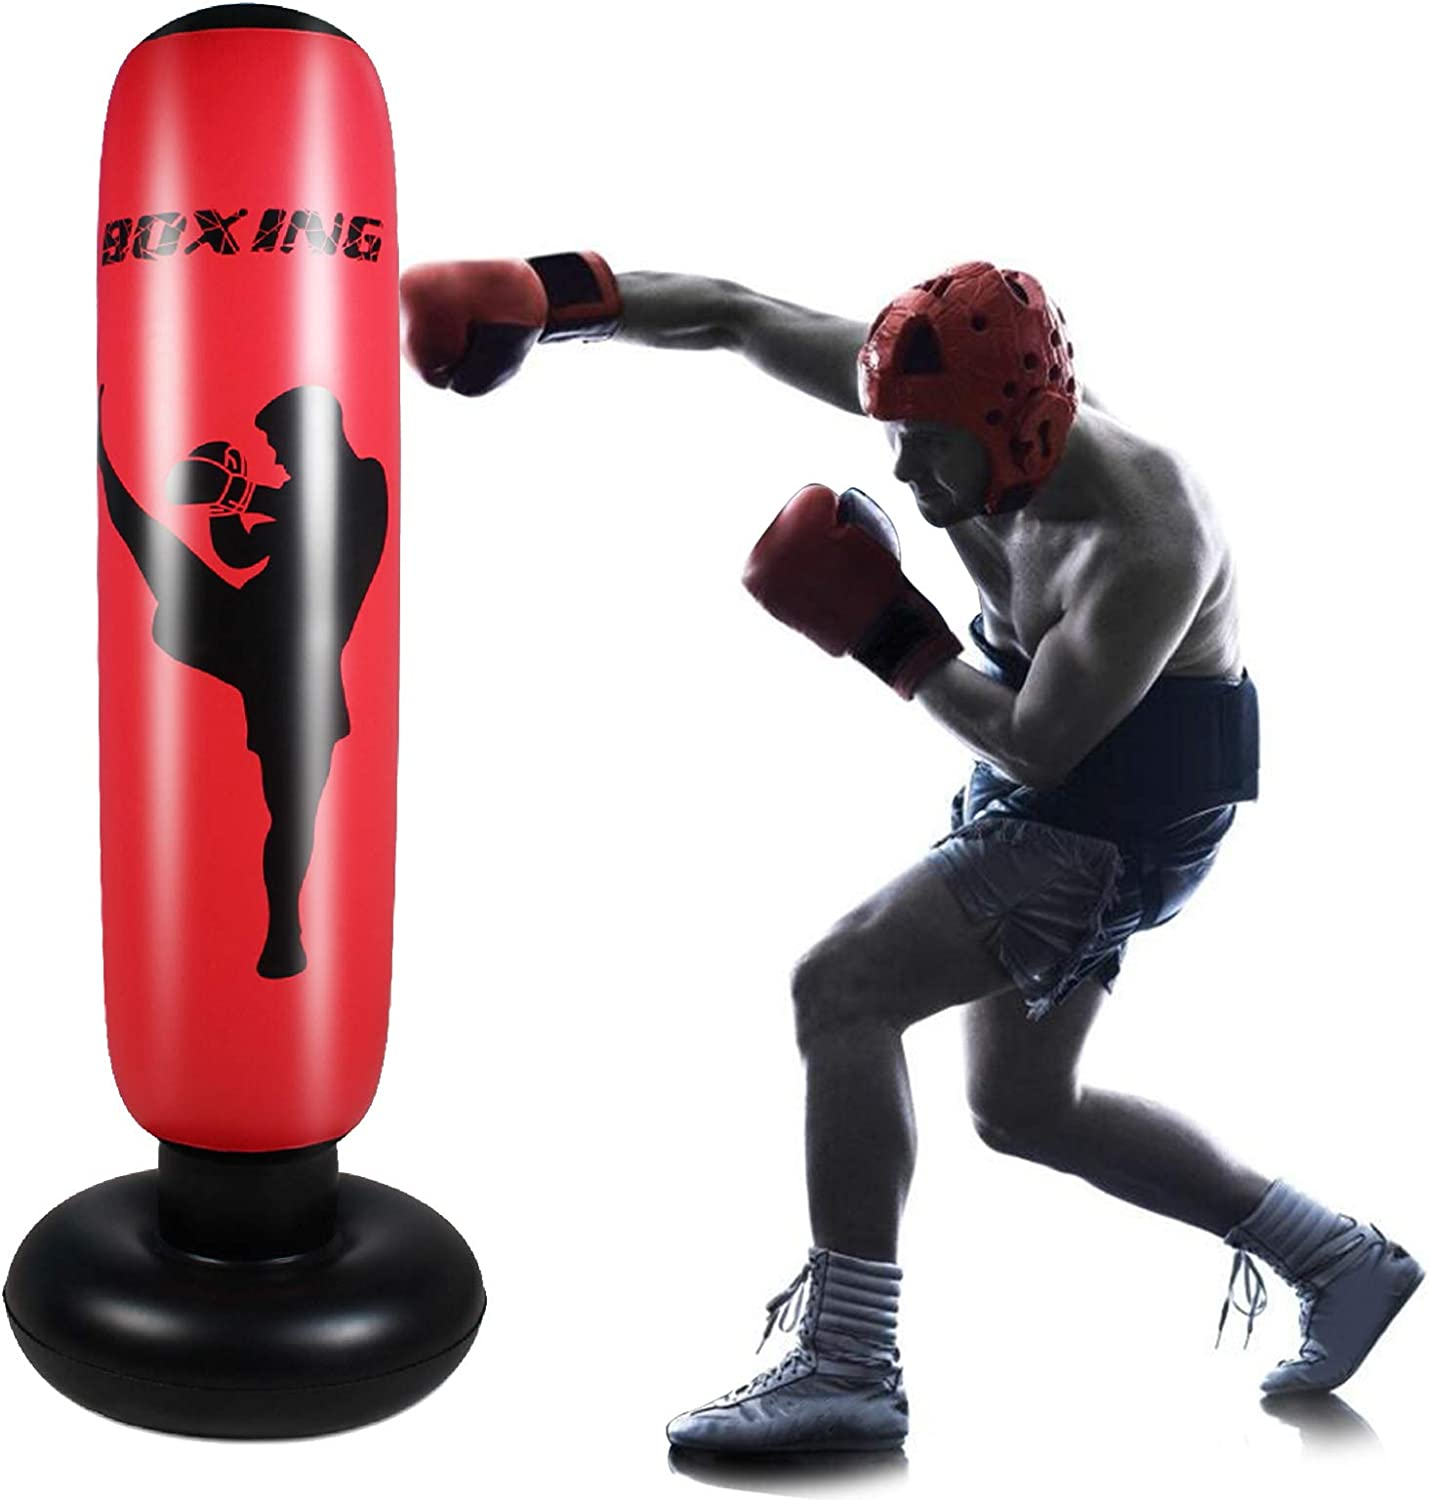 Ruiqas Inflatable Punching Topics on TV Bag 67 F Home Over item handling ☆ Fitness inch Boxing